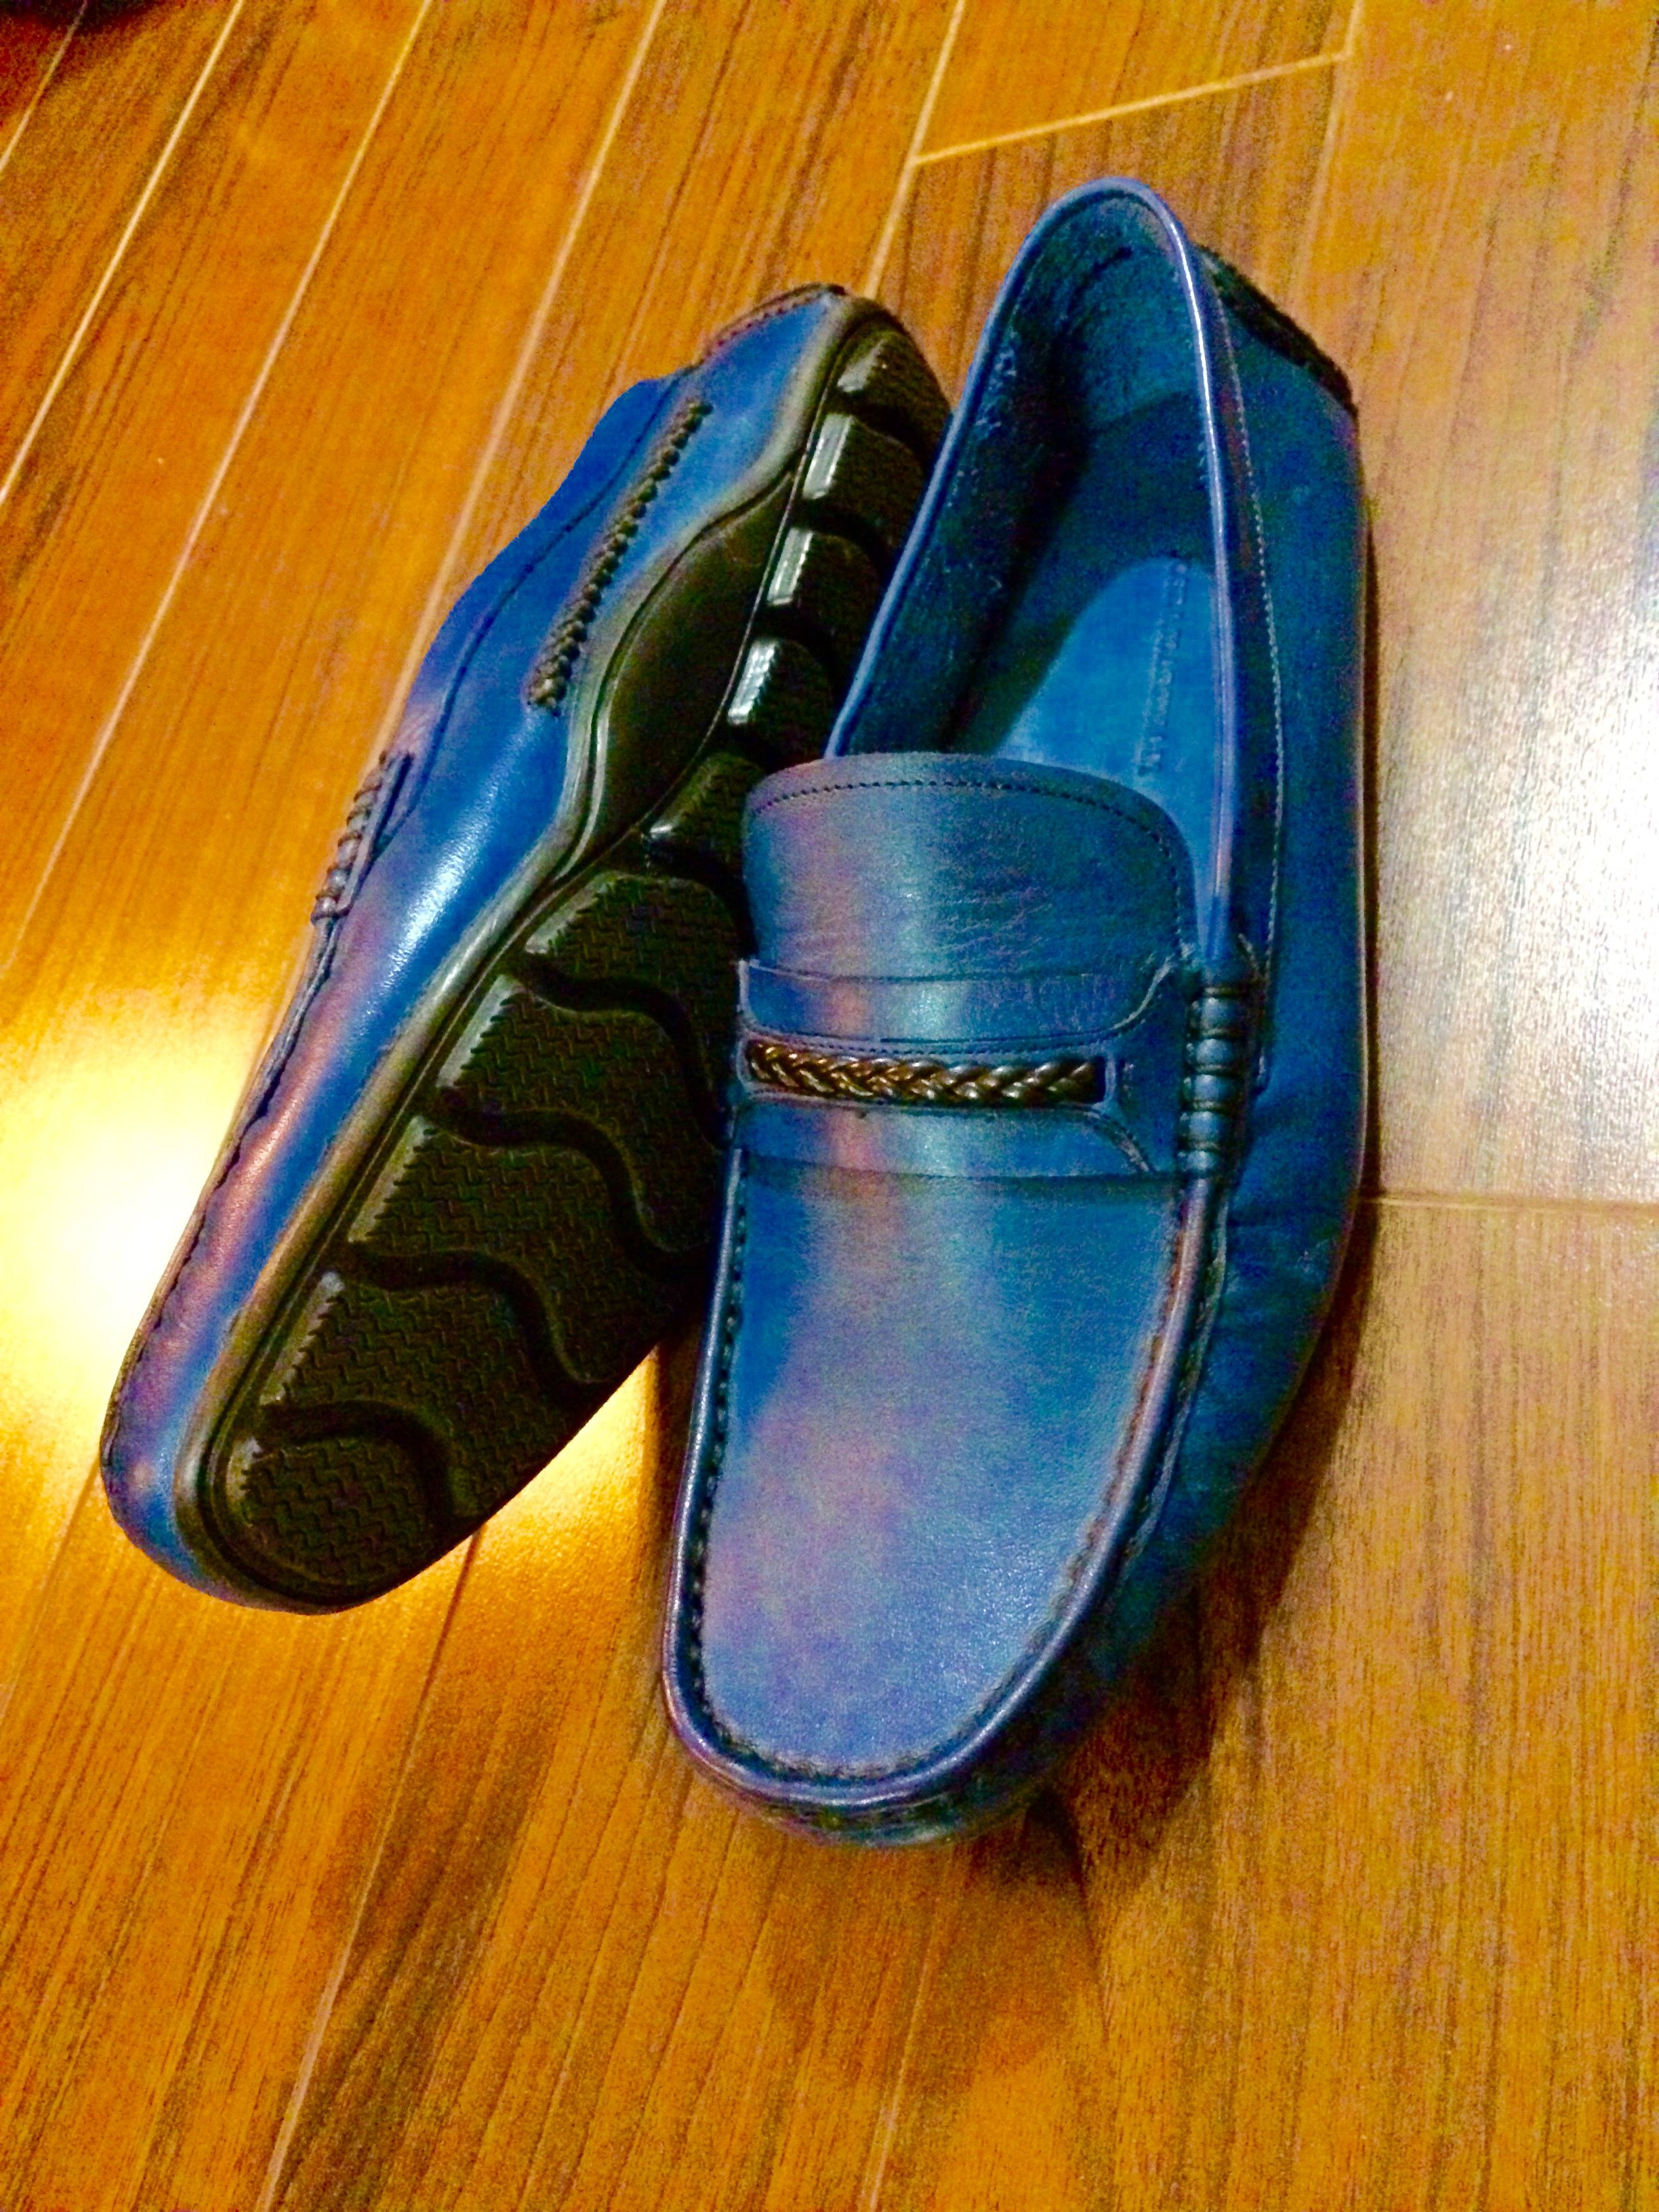 e450c86263 Loafer.. Hand Crafted Shoes by Jose & Markham | SHOES